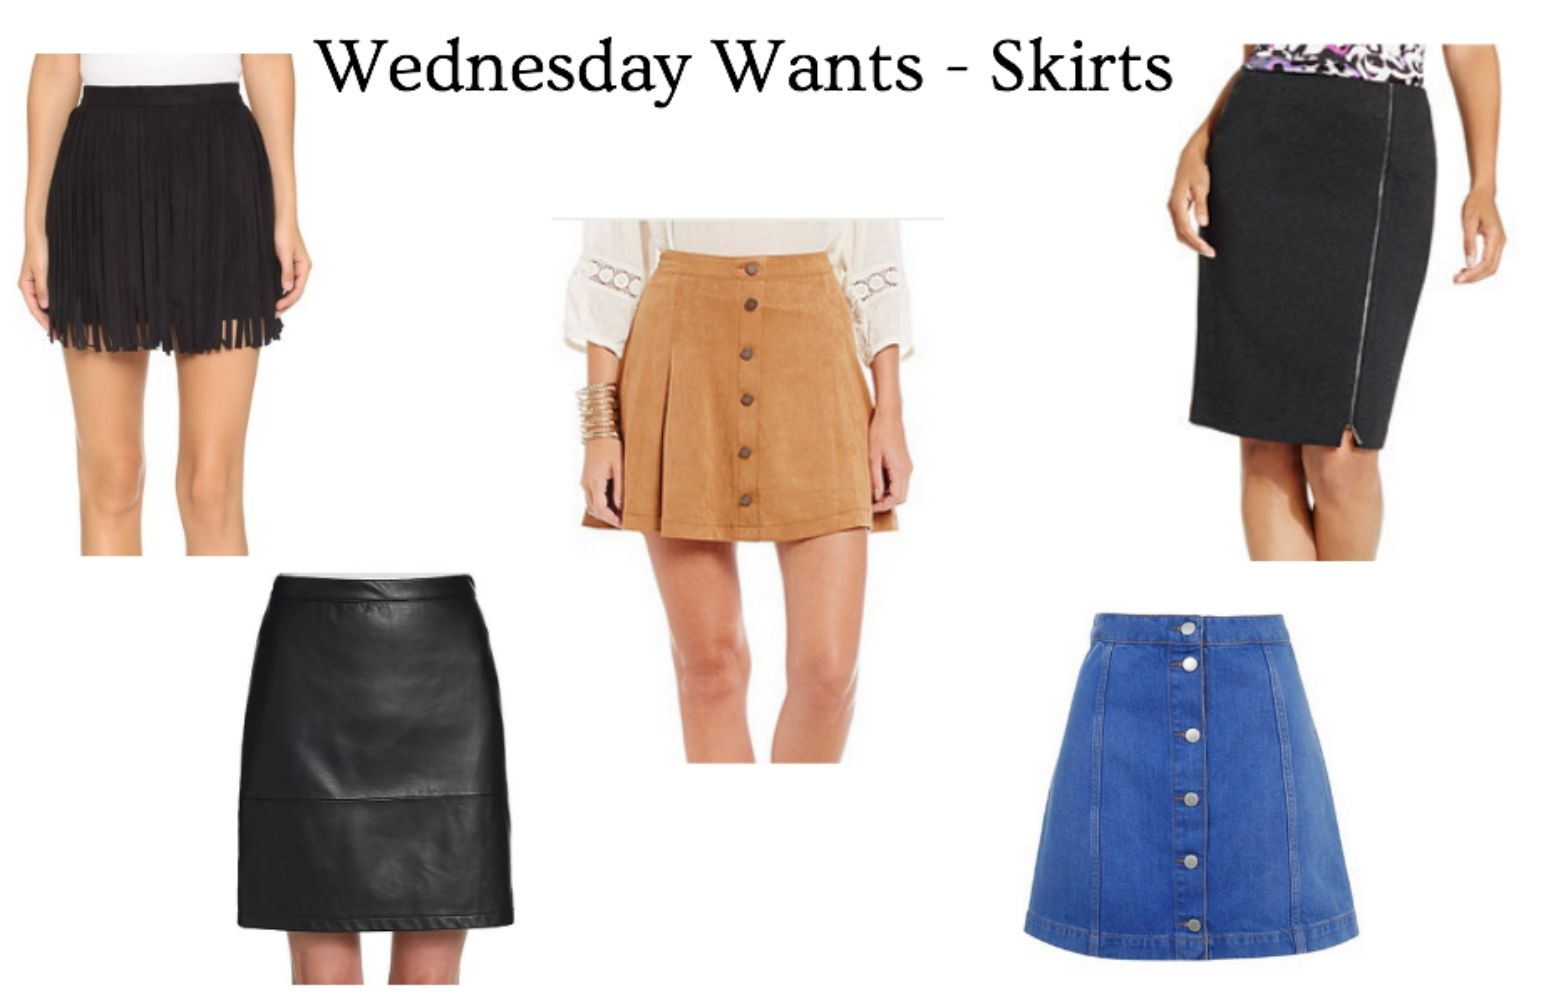 Fall 2015 Skirt Trends #fashionblogger #fallfashion #fashiontrends #skirts #Outfitideas #trendy